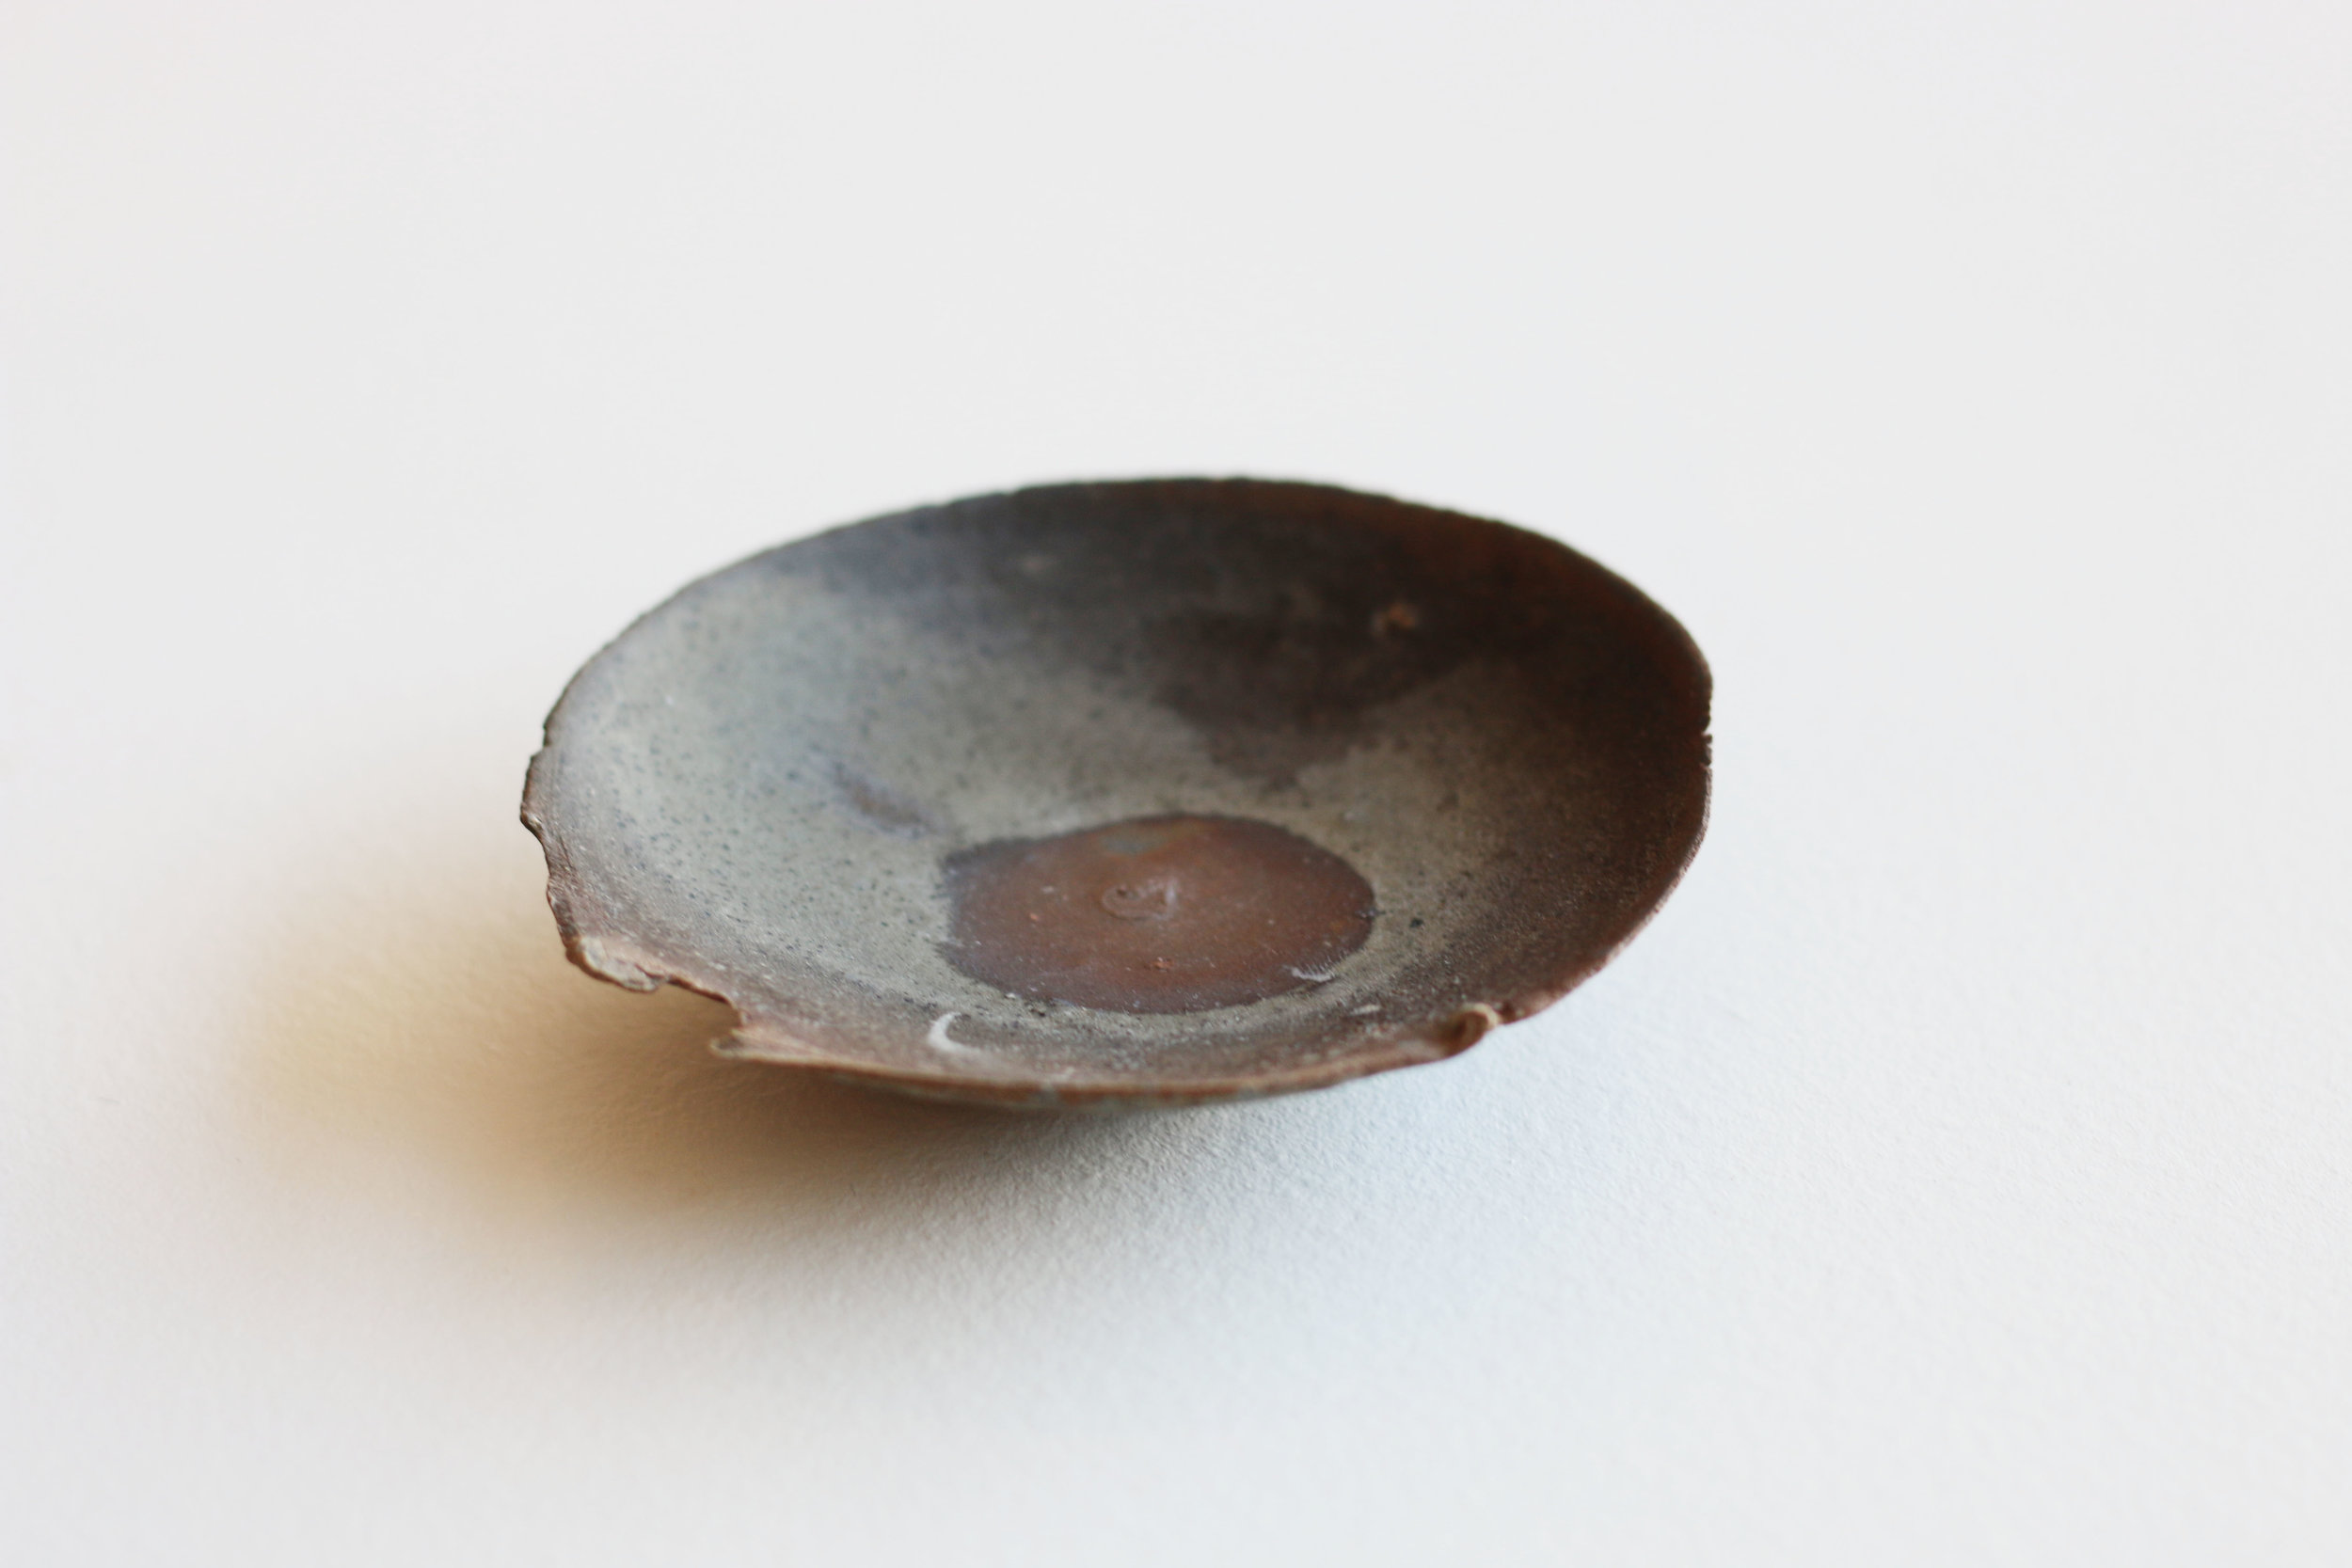 Small Dish with Ripped Lip